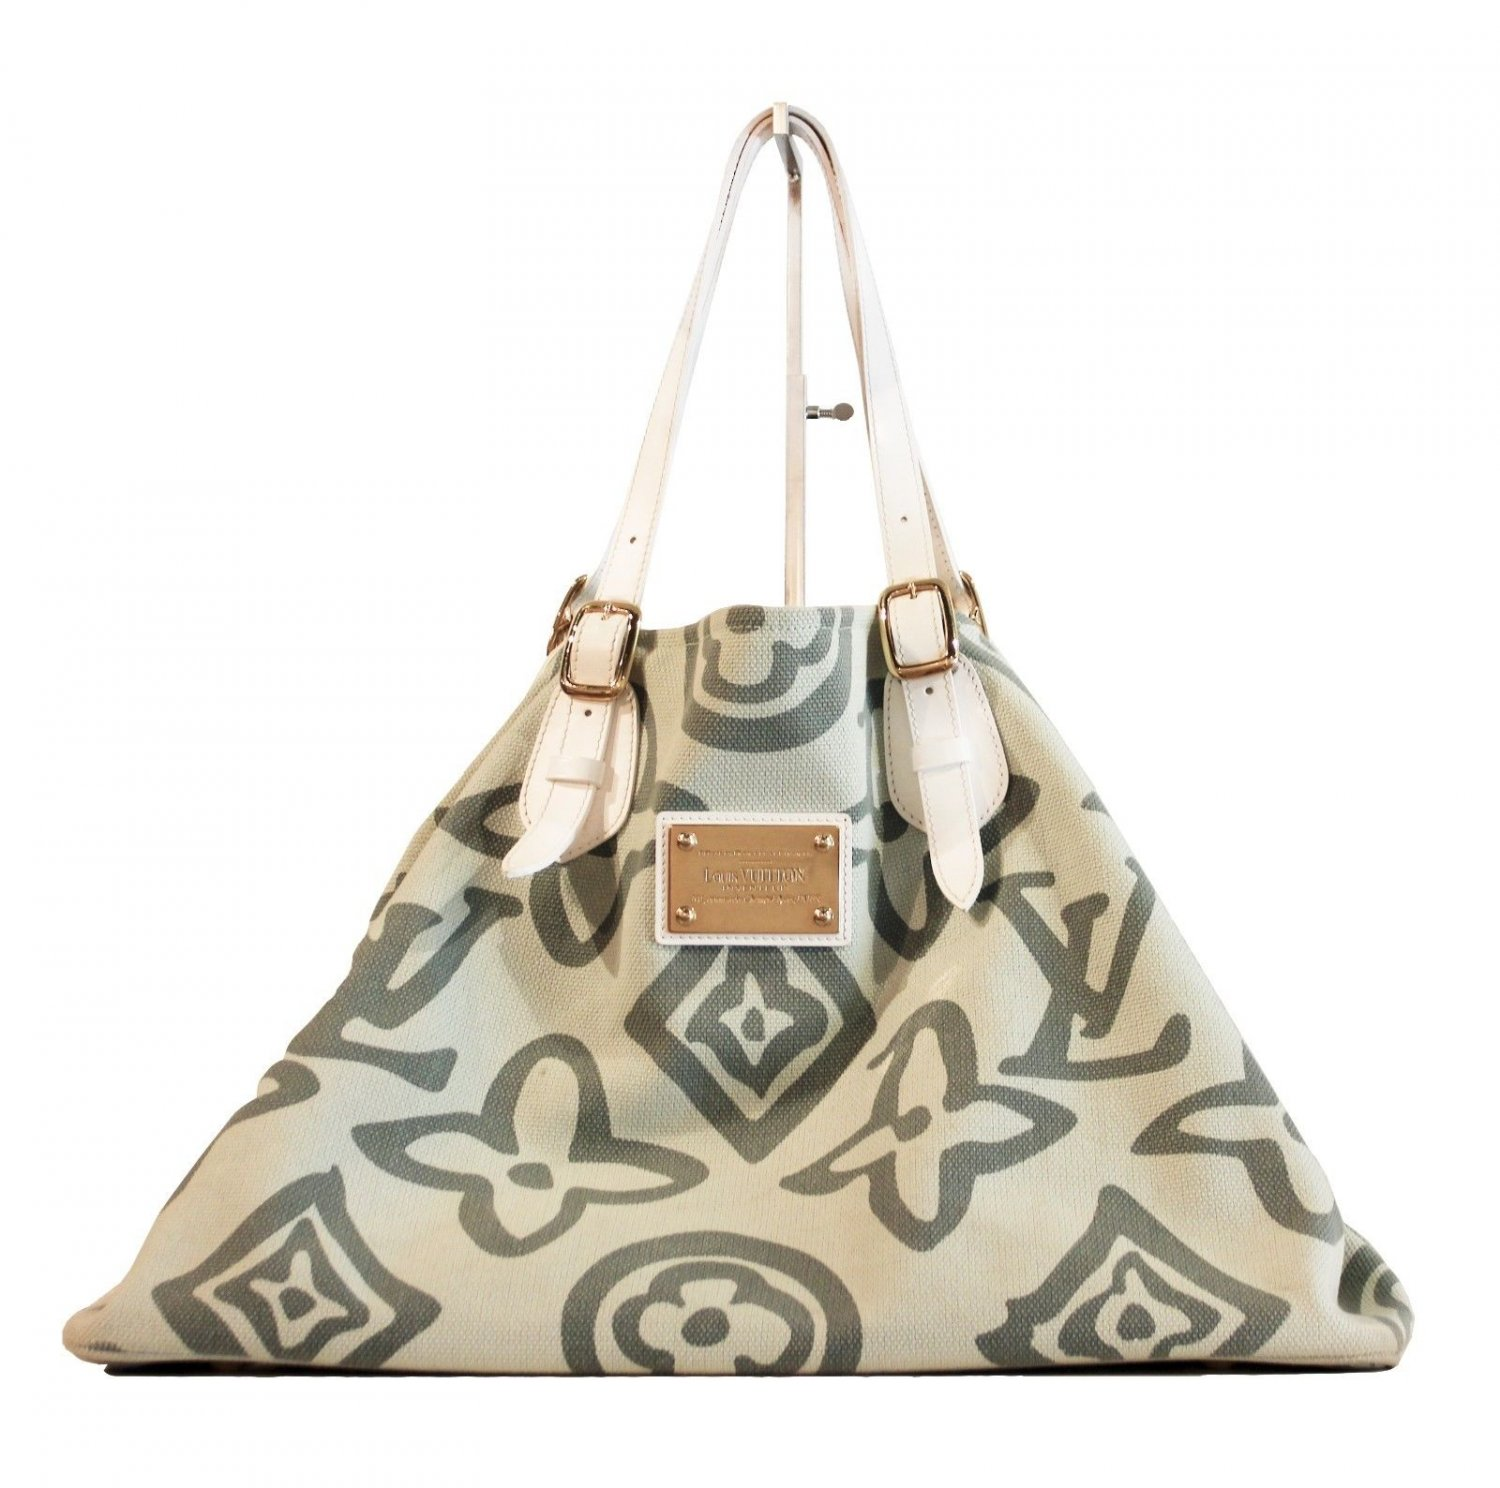 Louis Vuitton Limited Edition Tahitienne GM Tote Green & White with Dust Bag